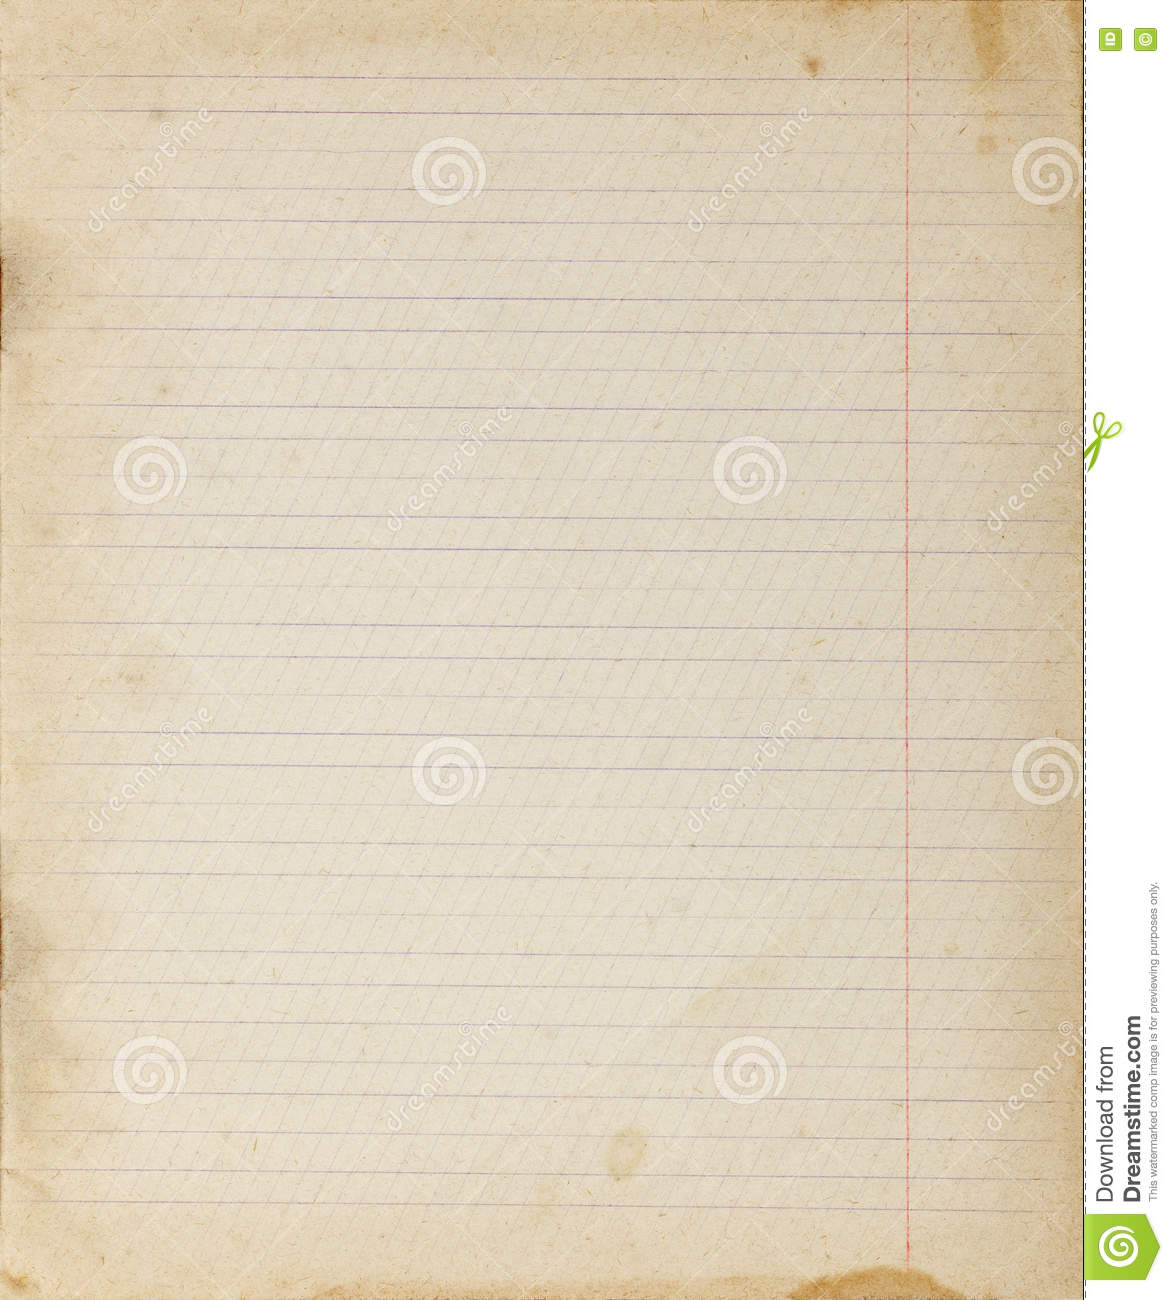 vintage lined paper background stock image - image of stained